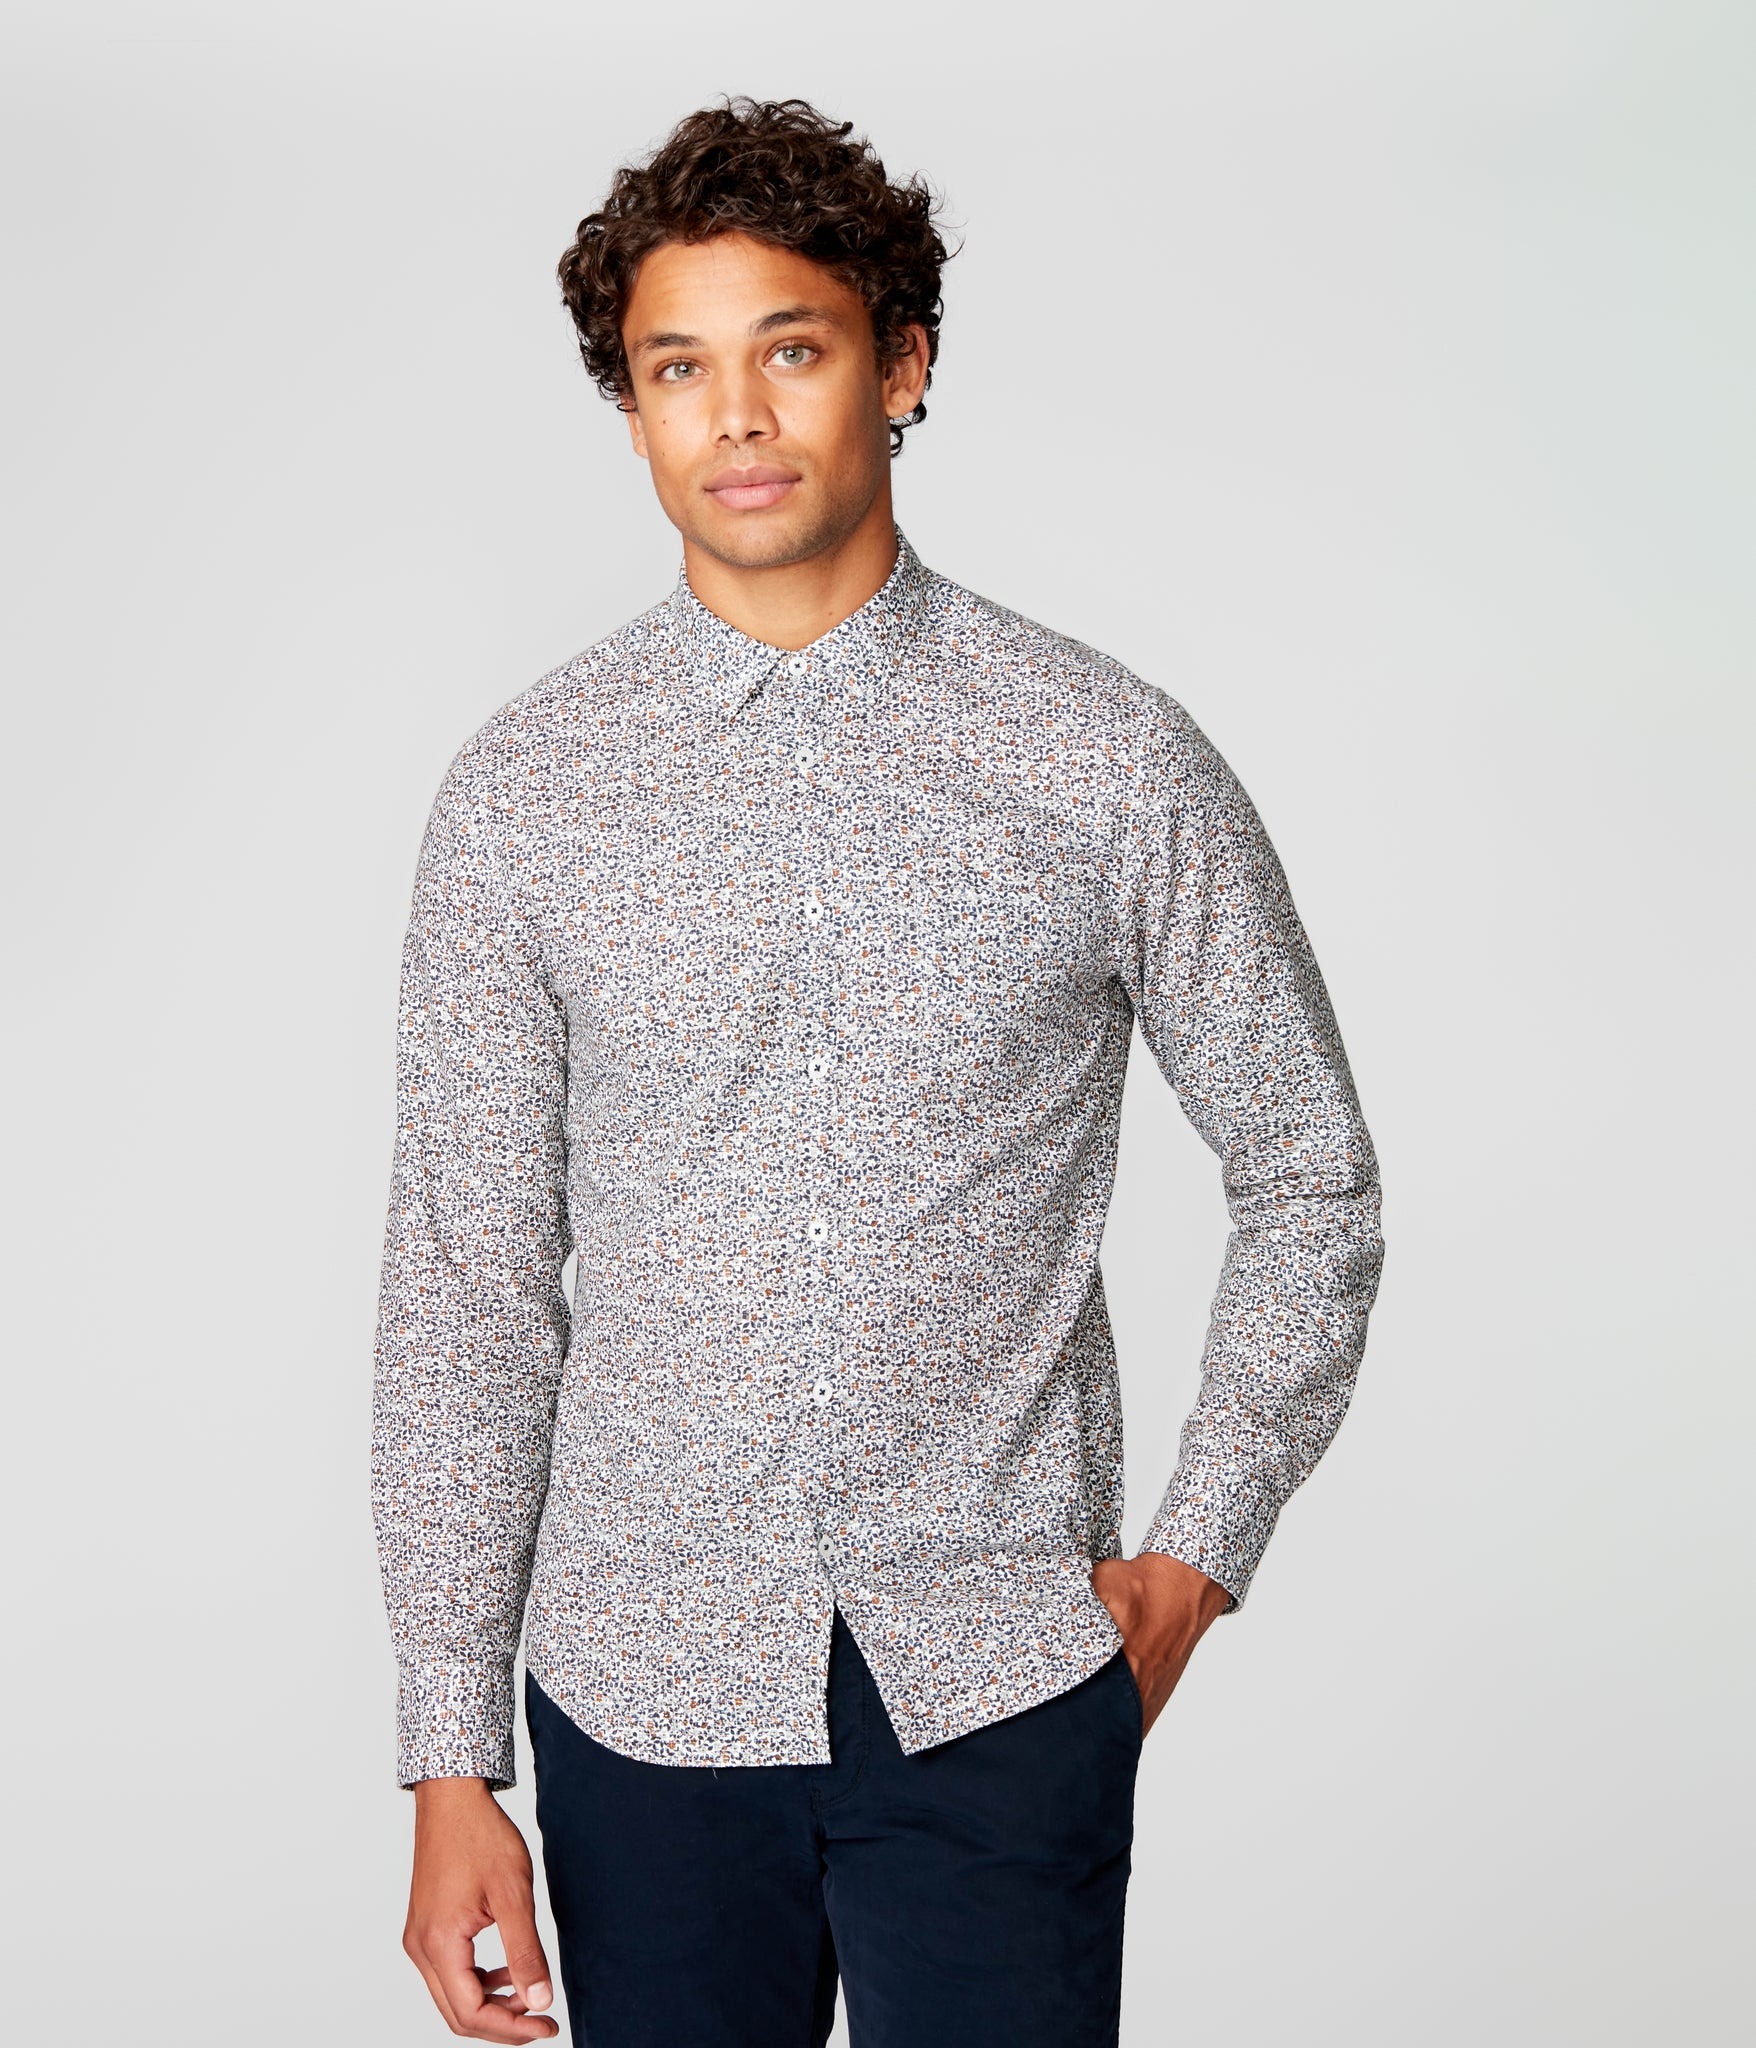 On-Point Print Shirt - Indigo Palais Royale